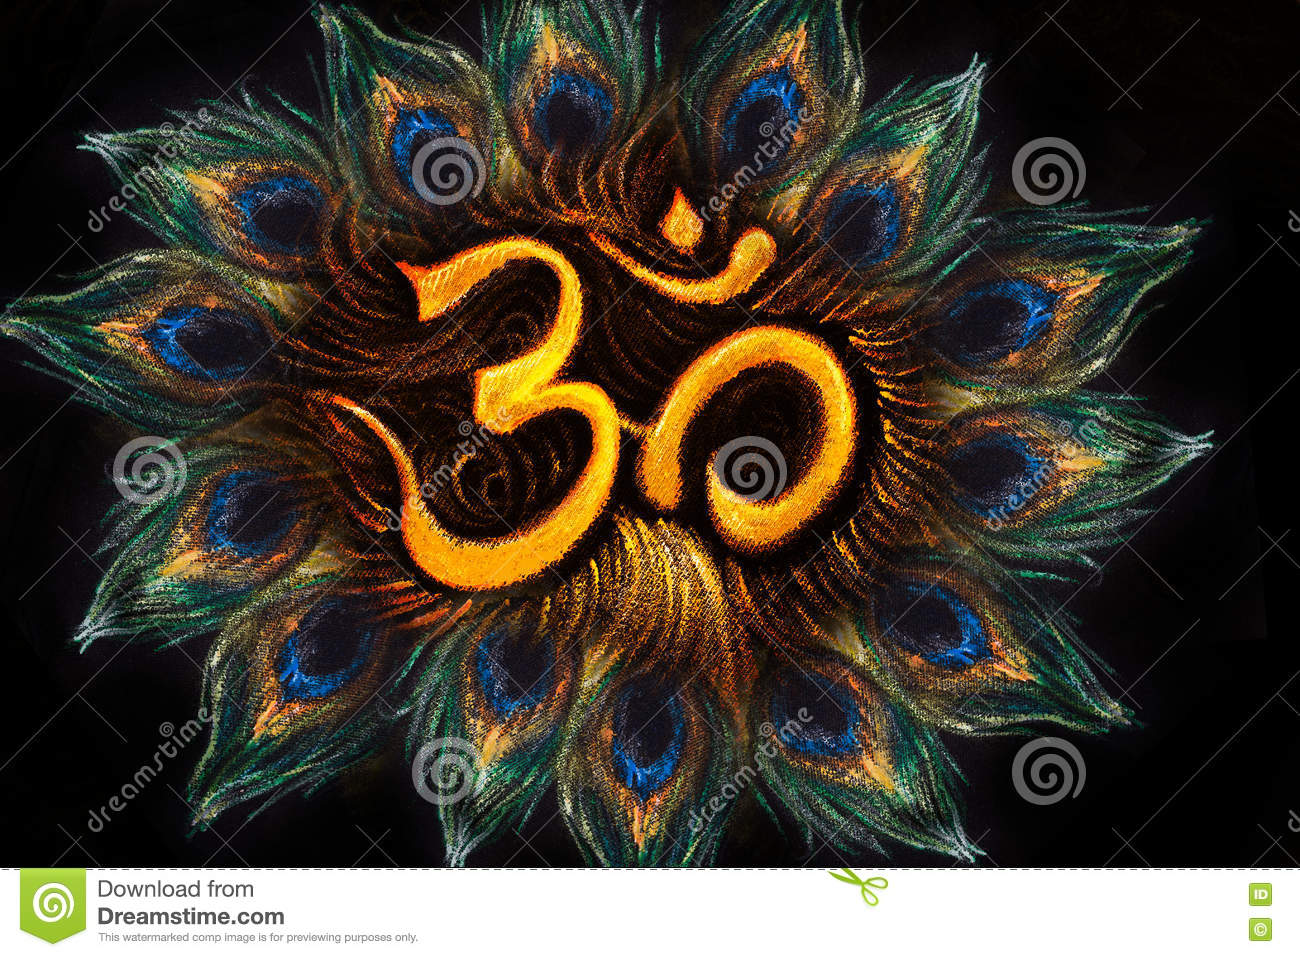 Sacred aum sanskrit symbol in circle of peacock feathers